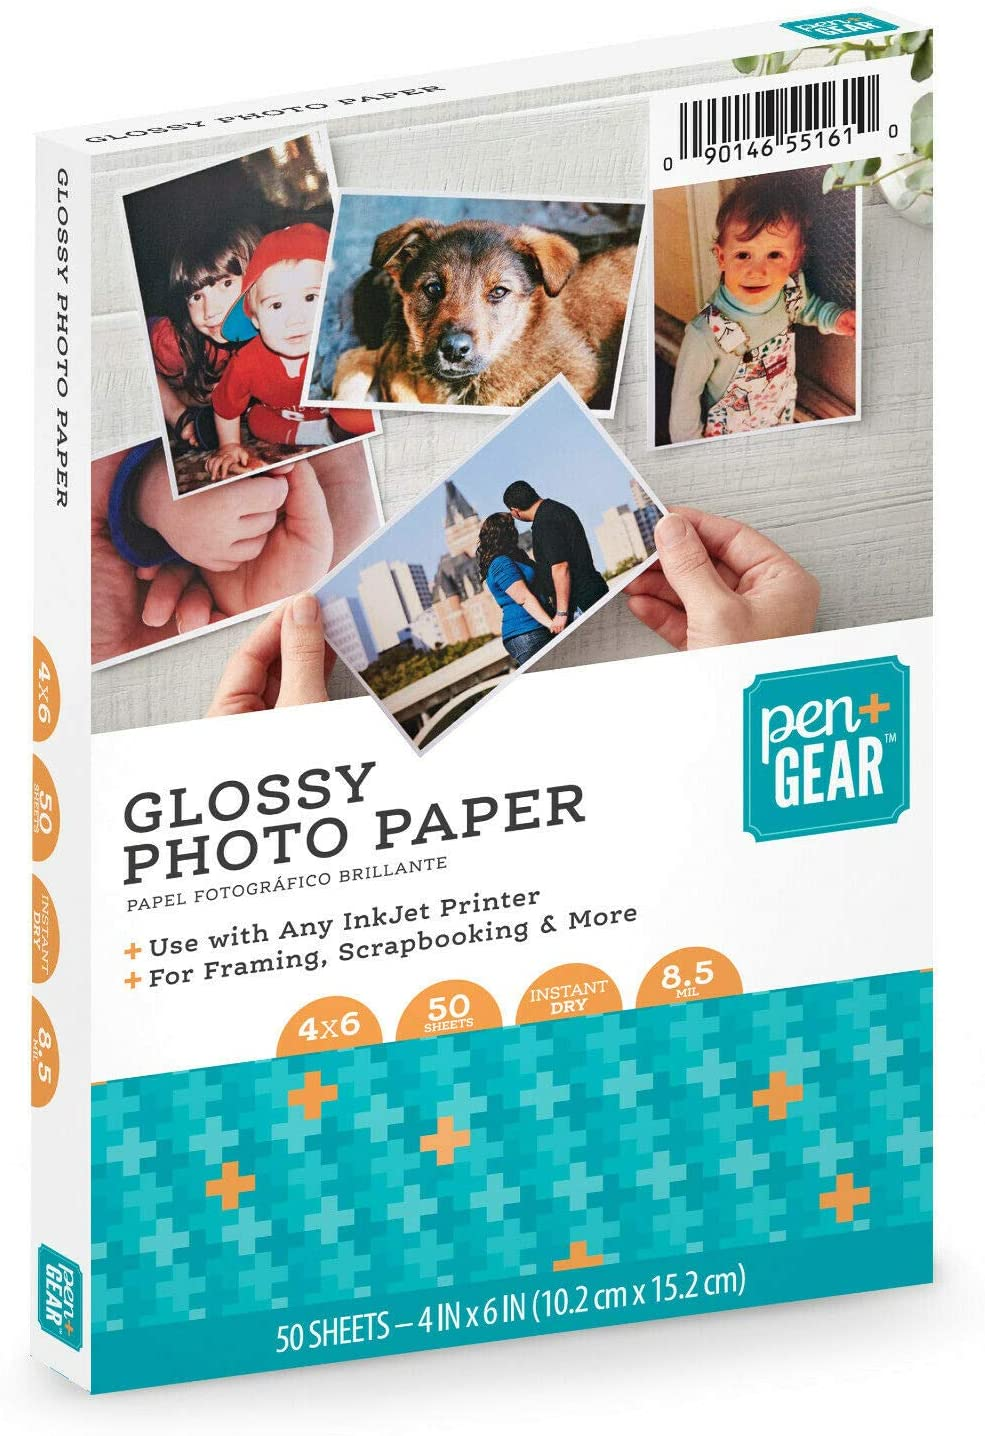 Pen+Gear GLOSSY PHOTO PAPER 4 x 6 50 SHEETS 8.5mil for INKJET PRINTERS 10x15